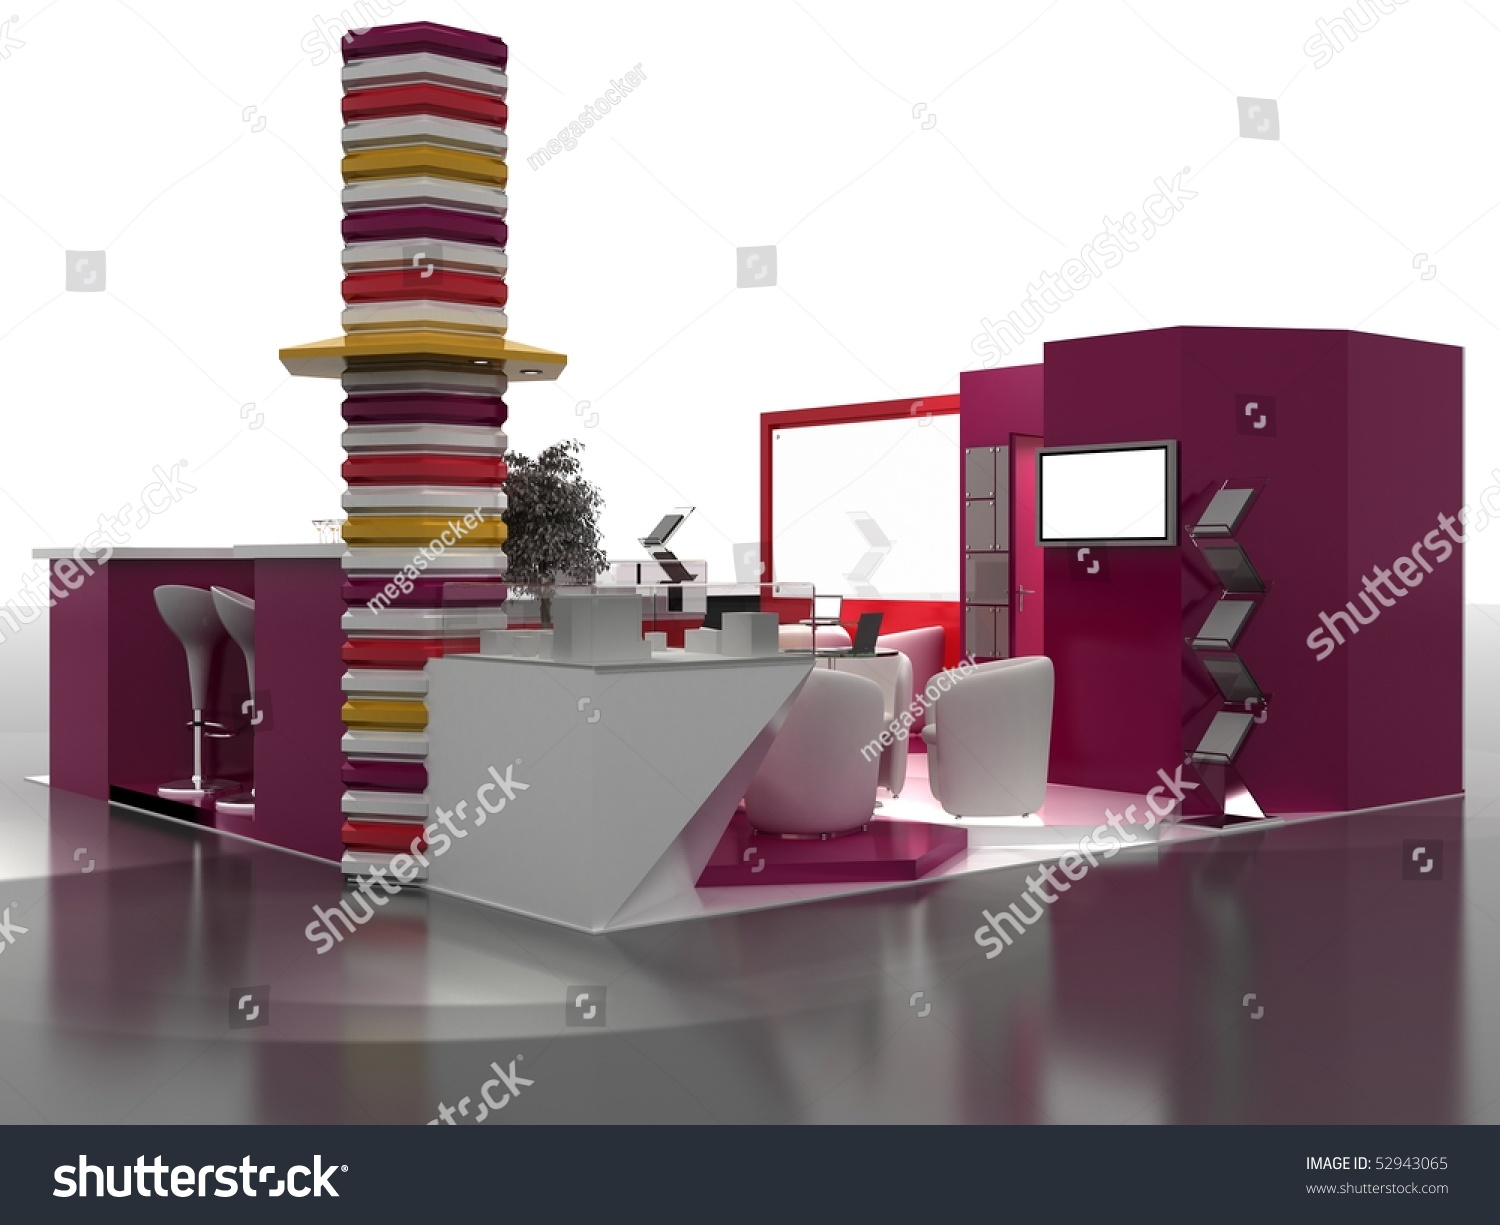 Exhibition Stand Quotation Format : Exhibition stand interior sample interiors series stock